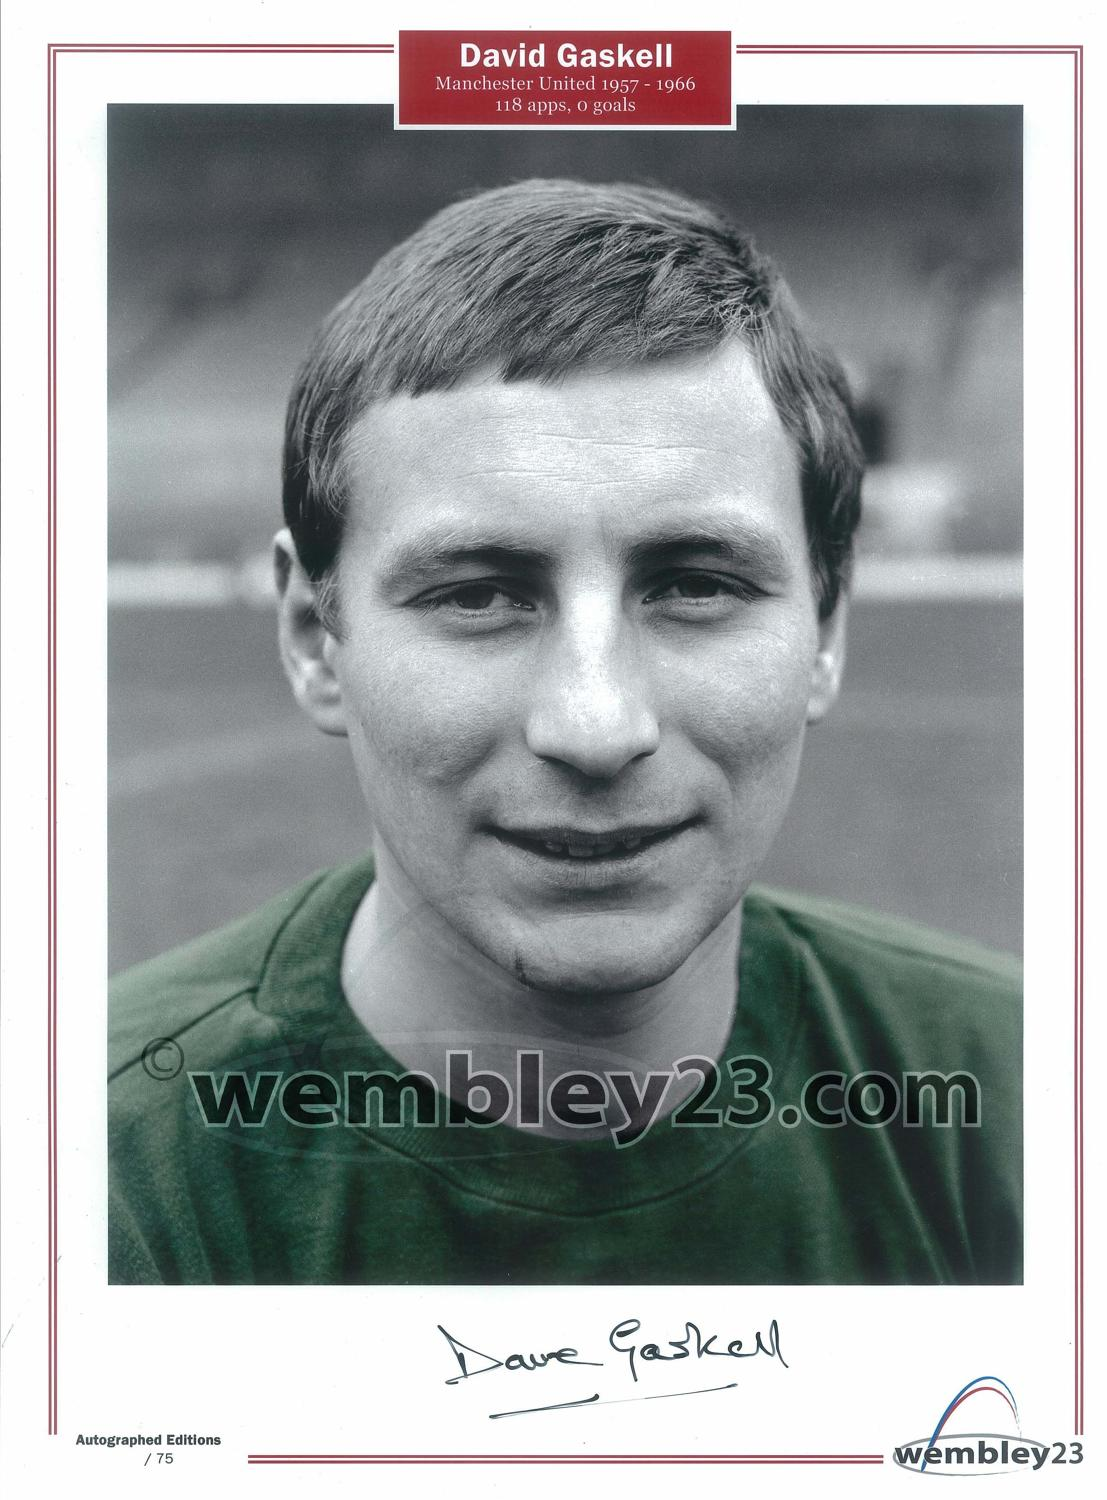 Dave Gaskell Manchester United